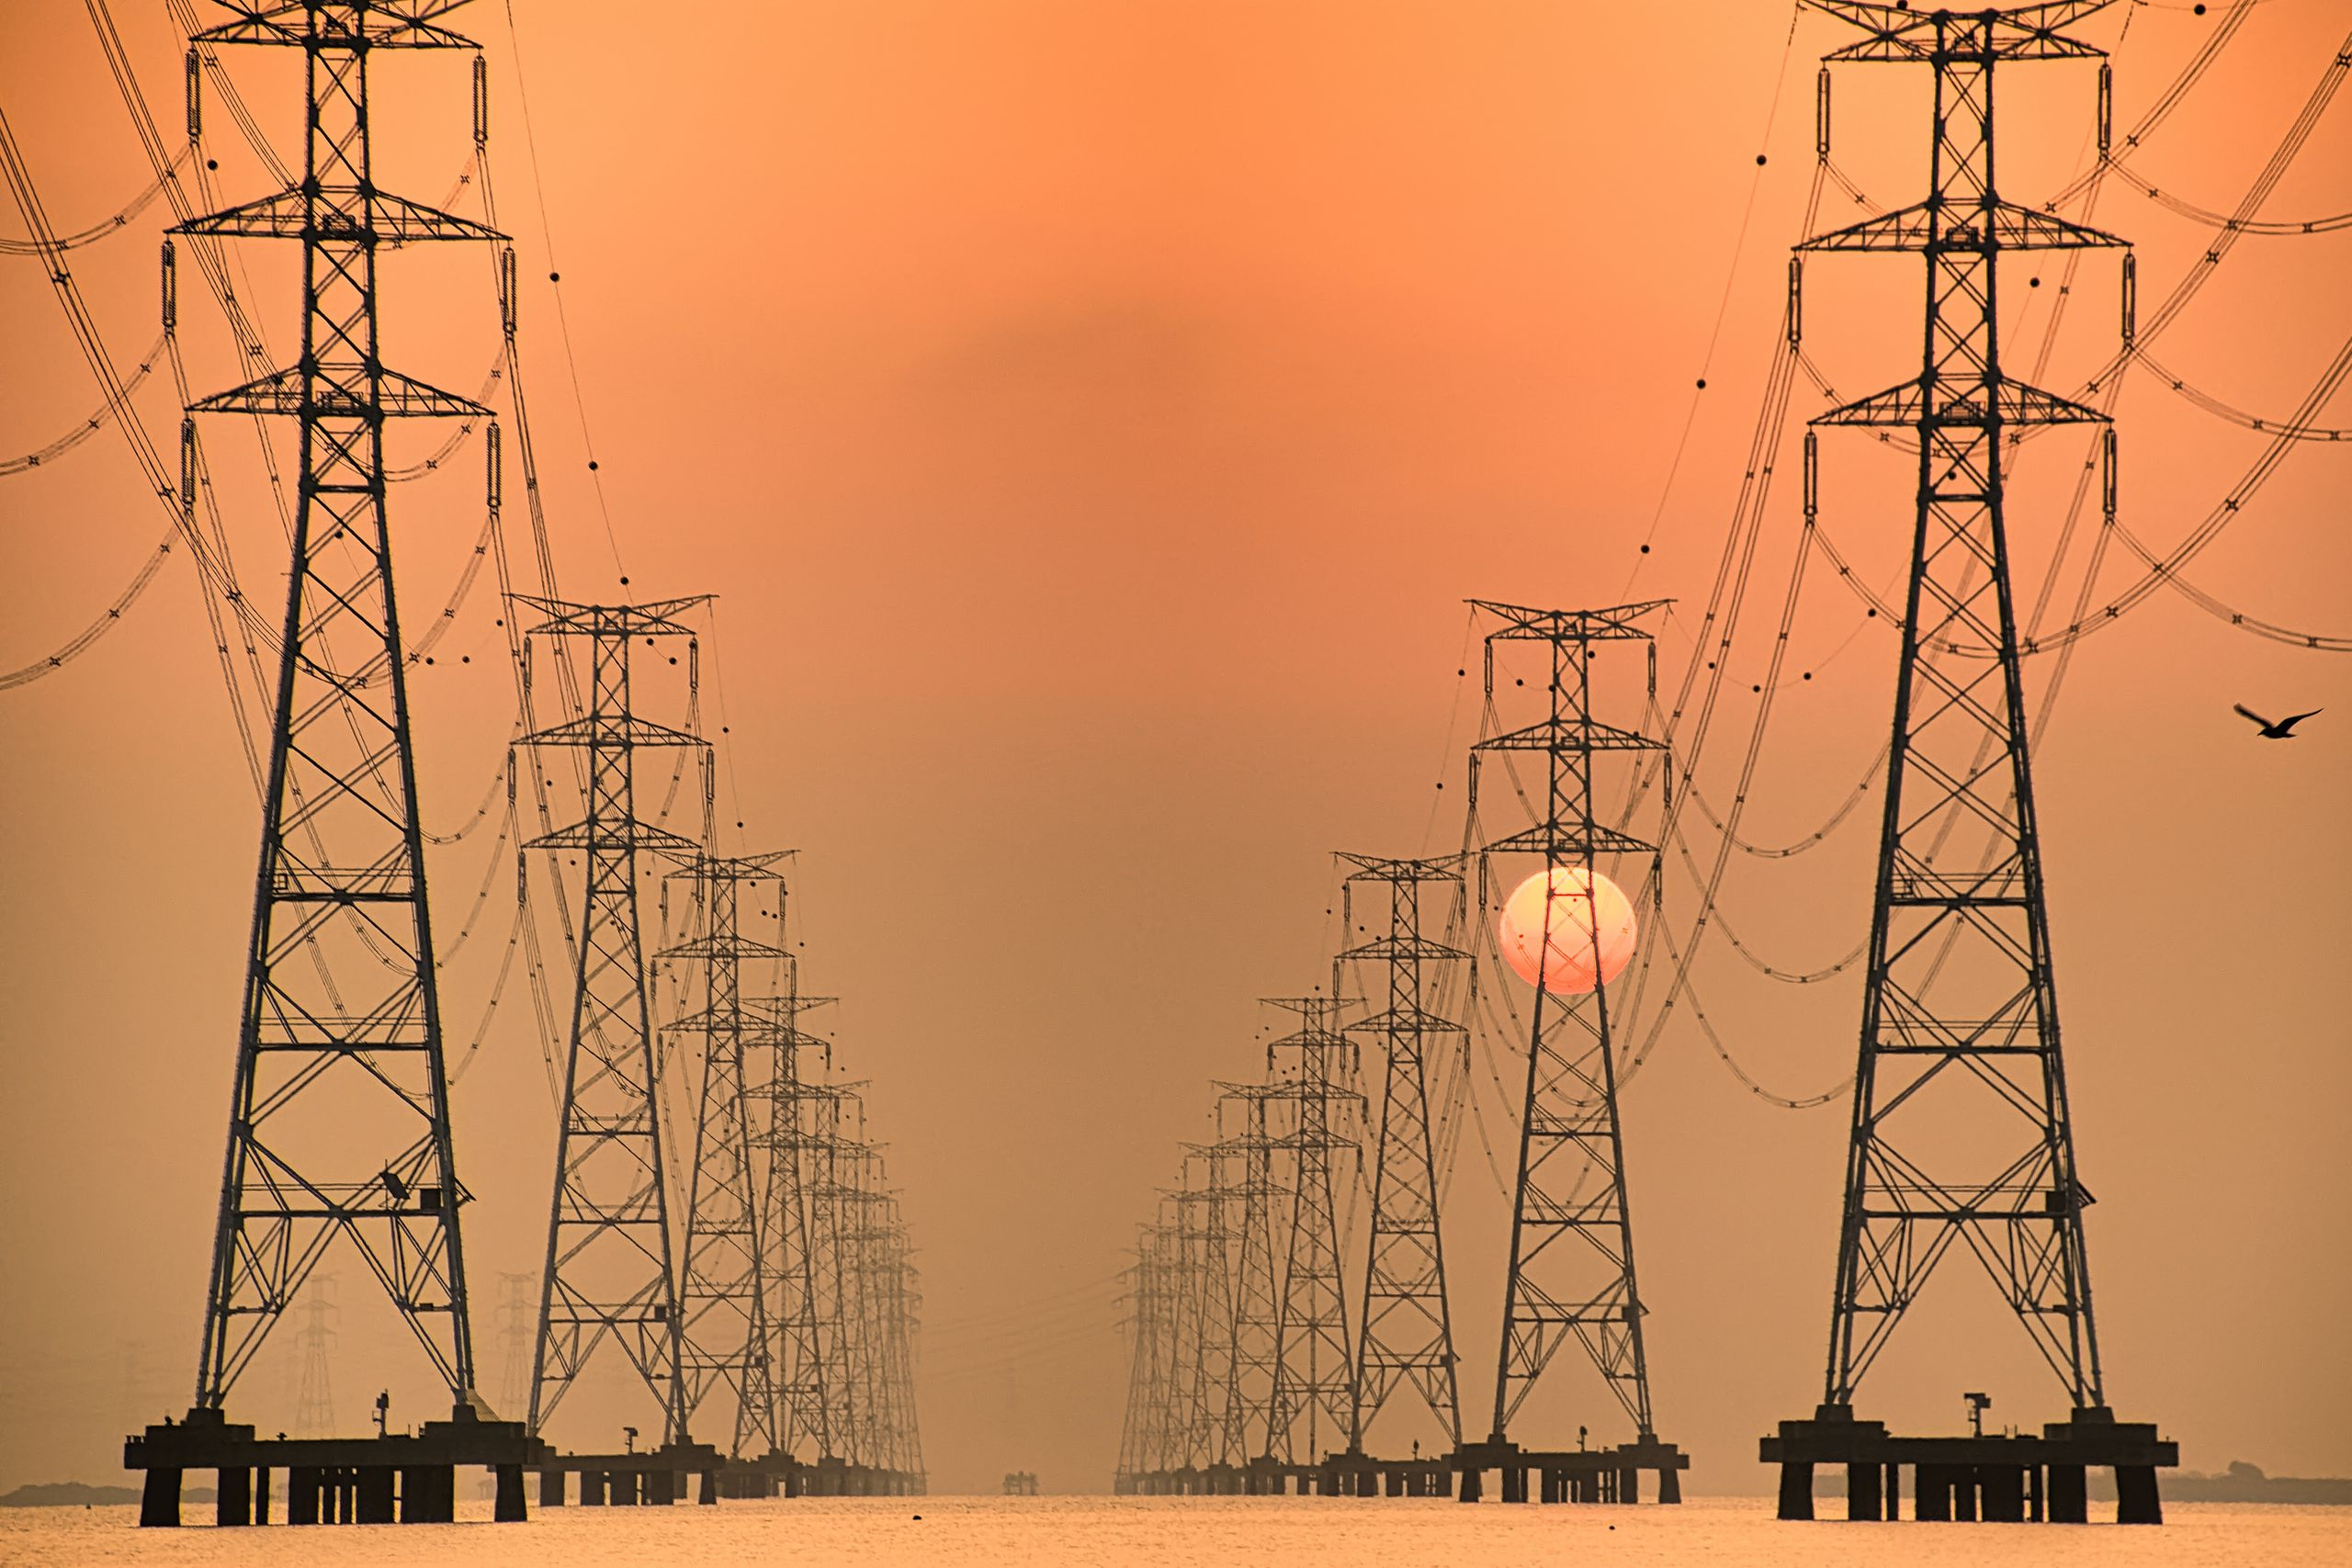 The sun rises behind Sihwa Lake Pylon VD702. The Sihwa Lake Tidal Power Station in South Korea is the world's largest tidal a